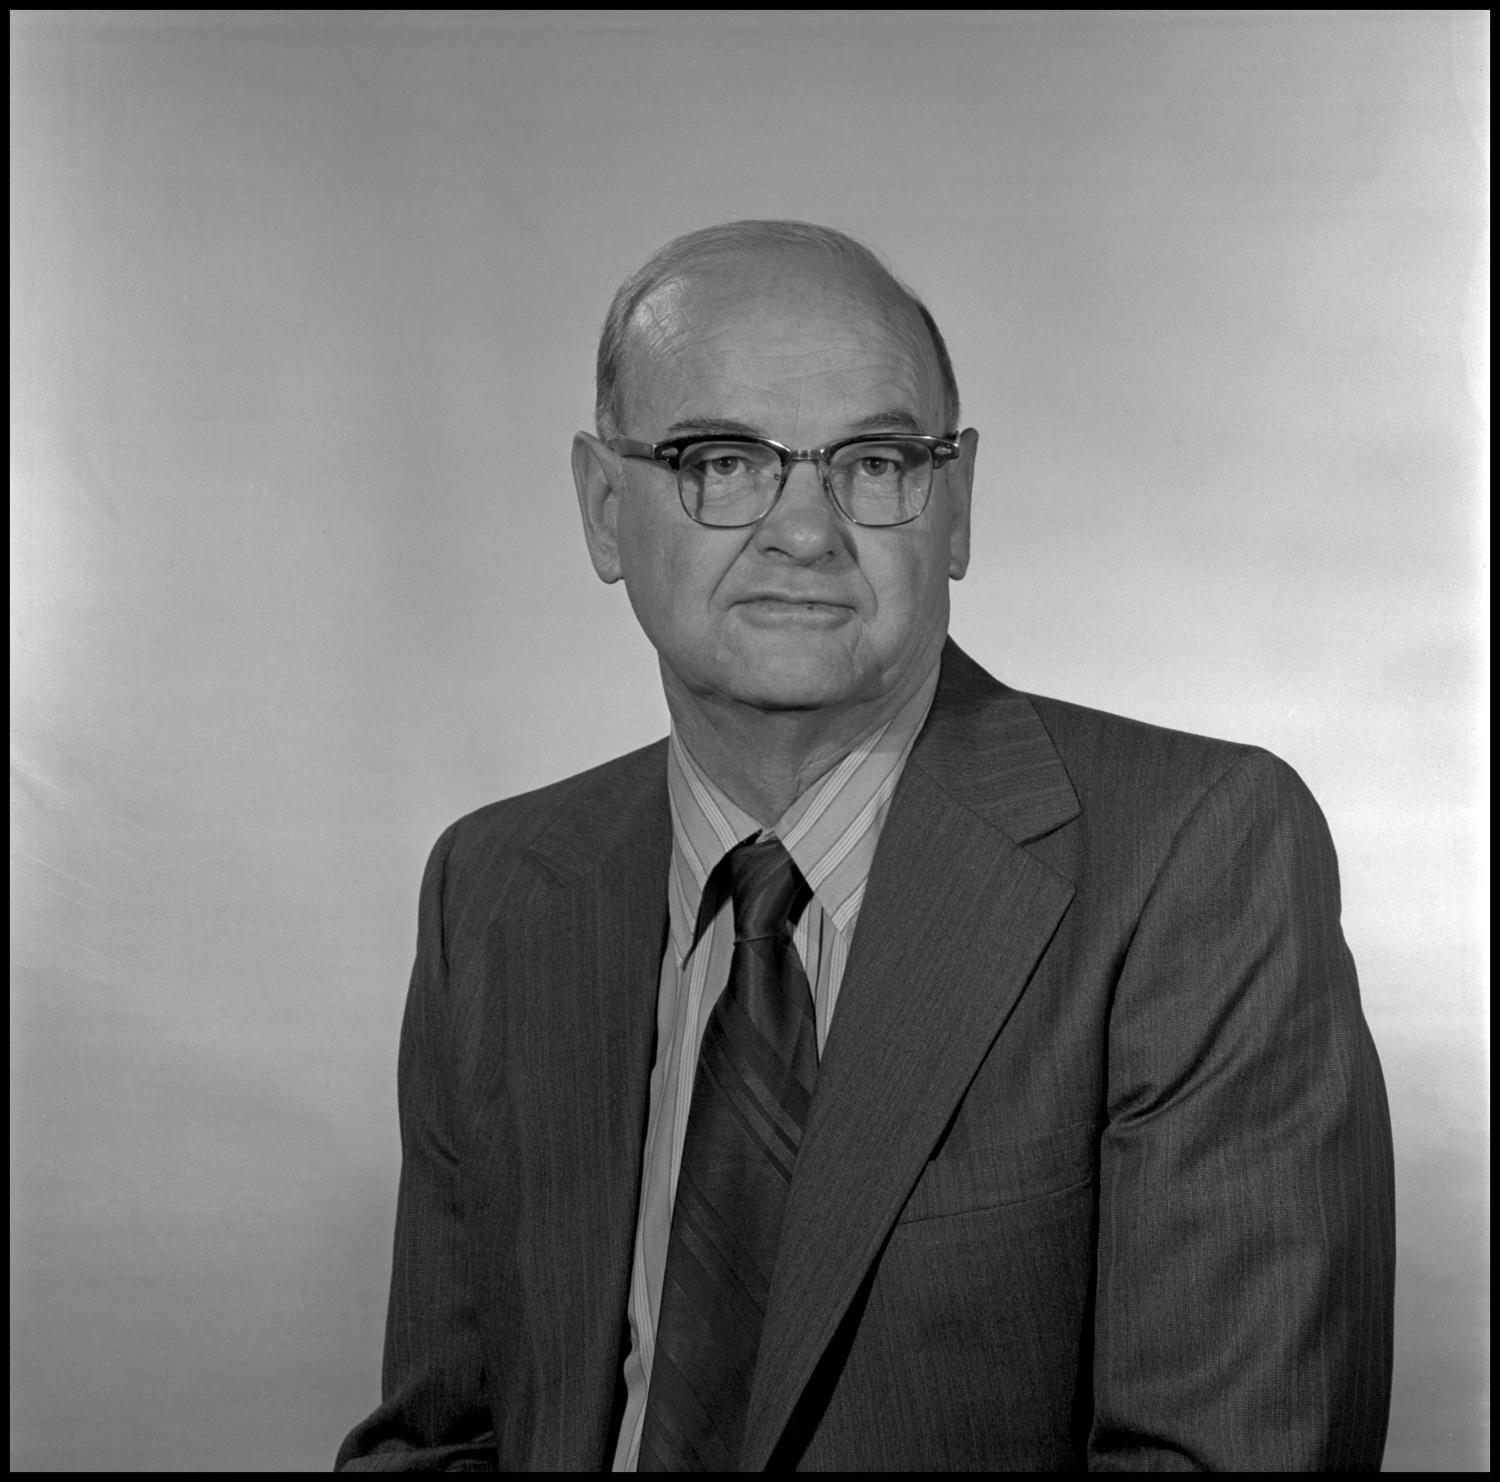 [Garland Brookshear portrait photo], Photograph of Garland Brookshear, a member of the Management faculty at NTSU, sitting for a portrait photo. He is wearing a suit with a striped shirt and tie, as well as a pair of glasses.,